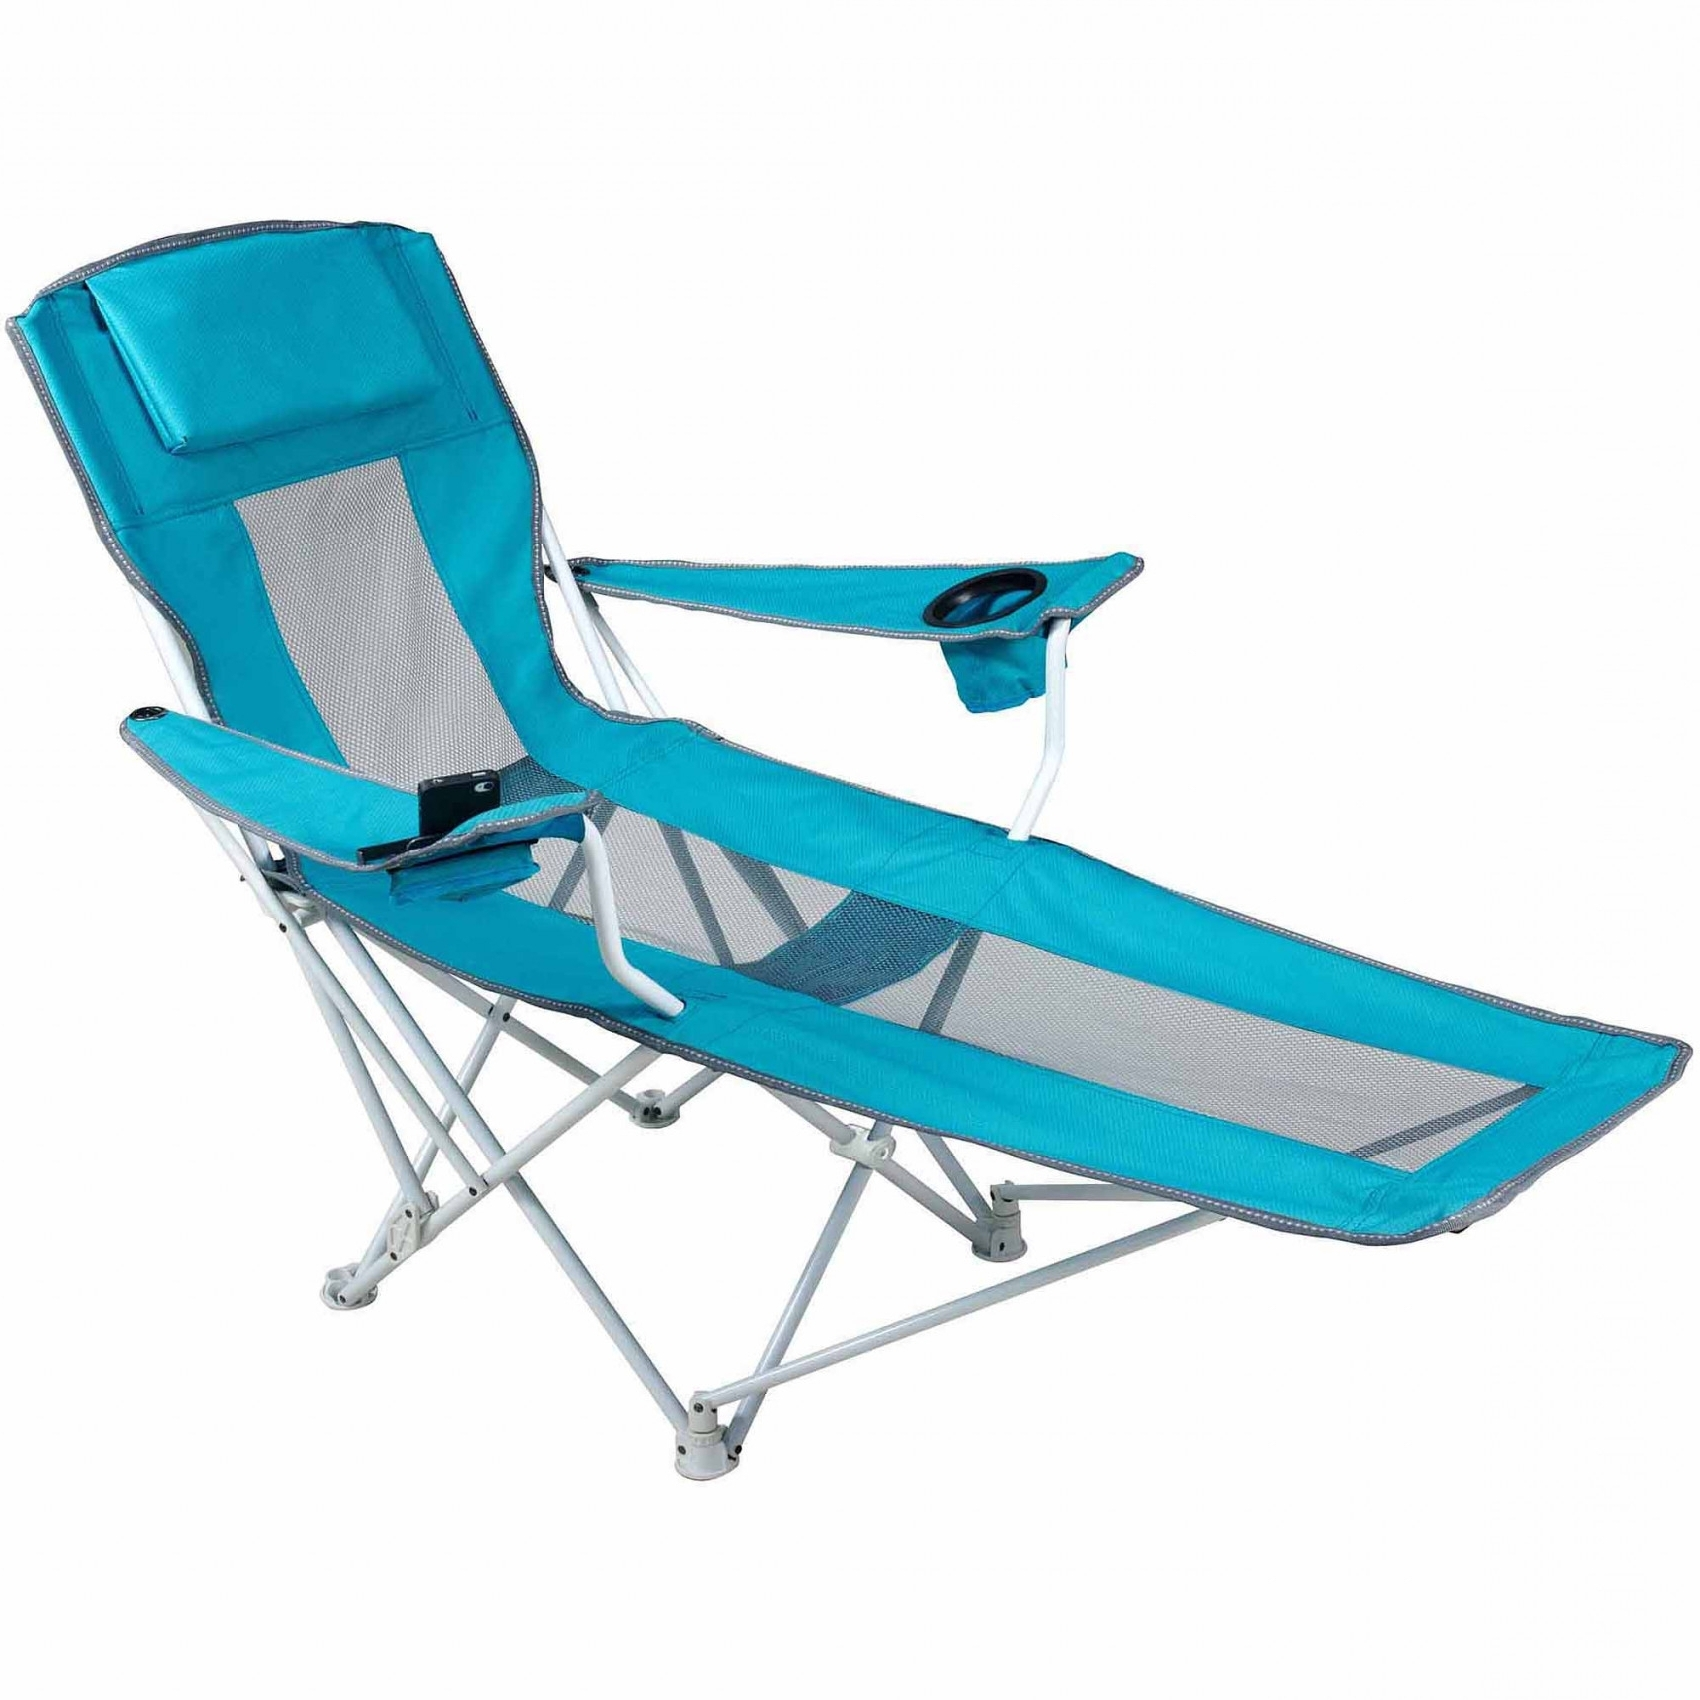 Reclining Beach Chairs In (View 9 of 15)